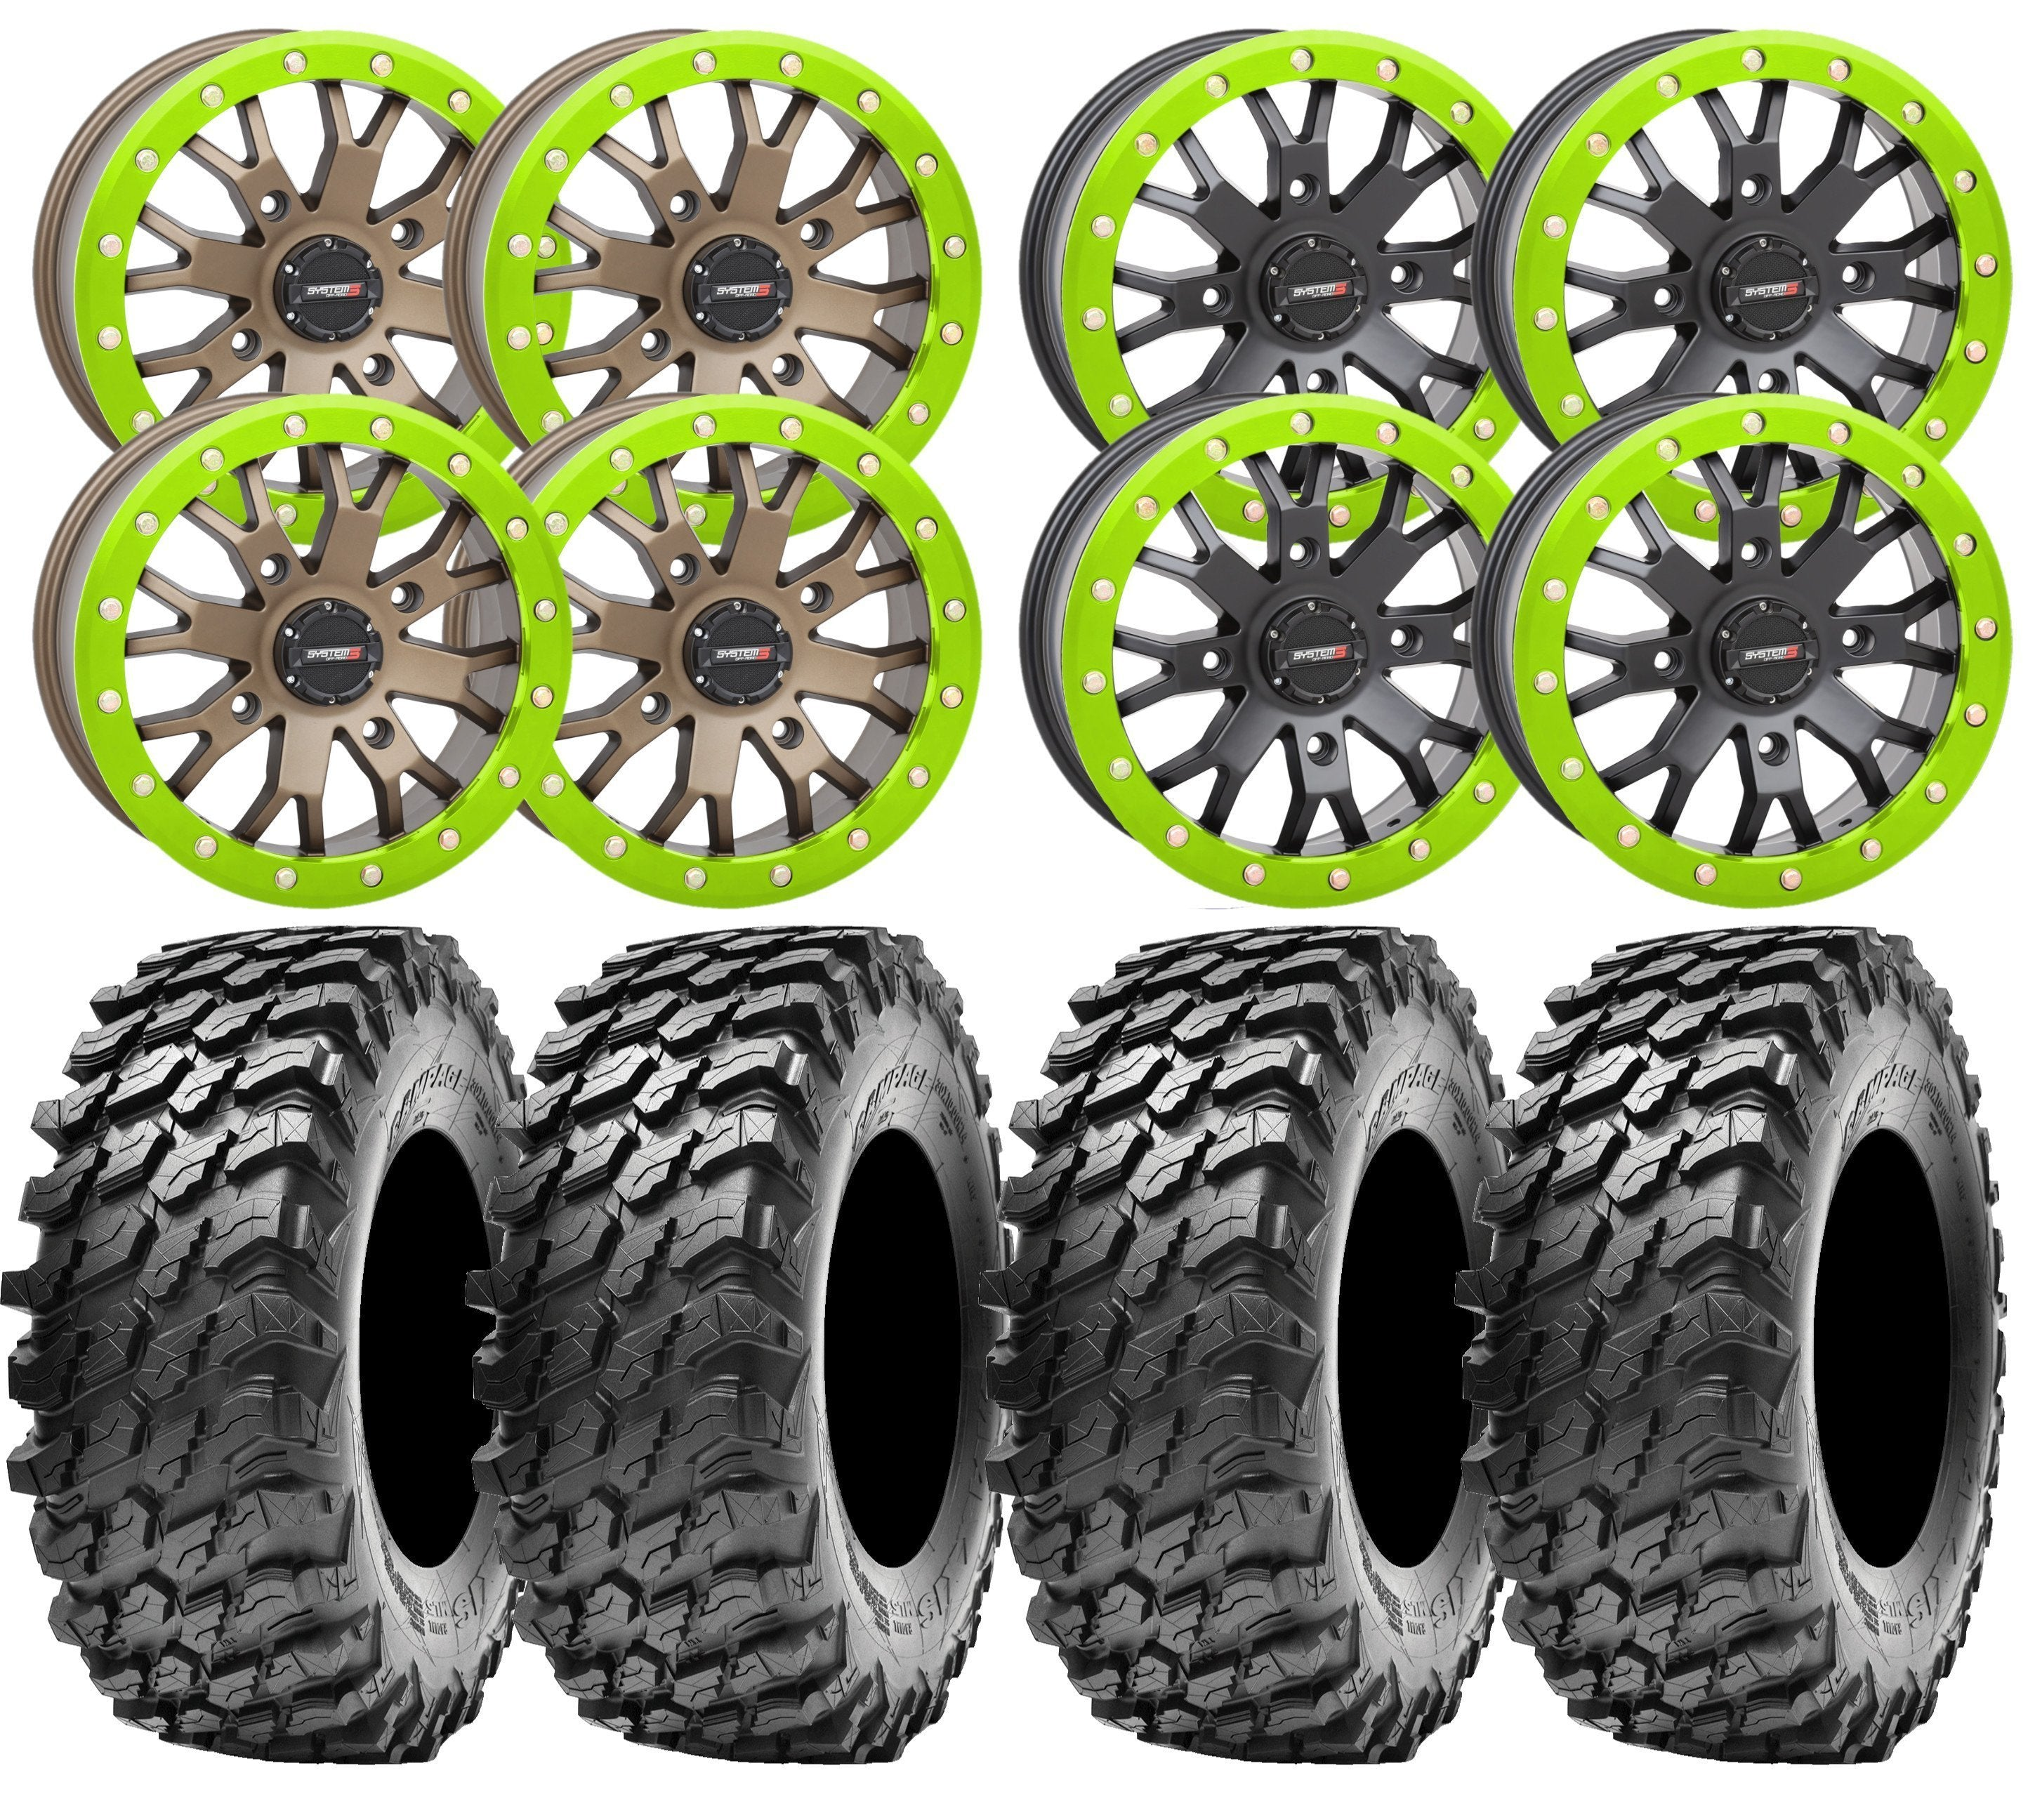 System3 Sb 4 And Maxxis Rampage Utv Wheel And Tire Kit W Custom Lime Planetsxs Com